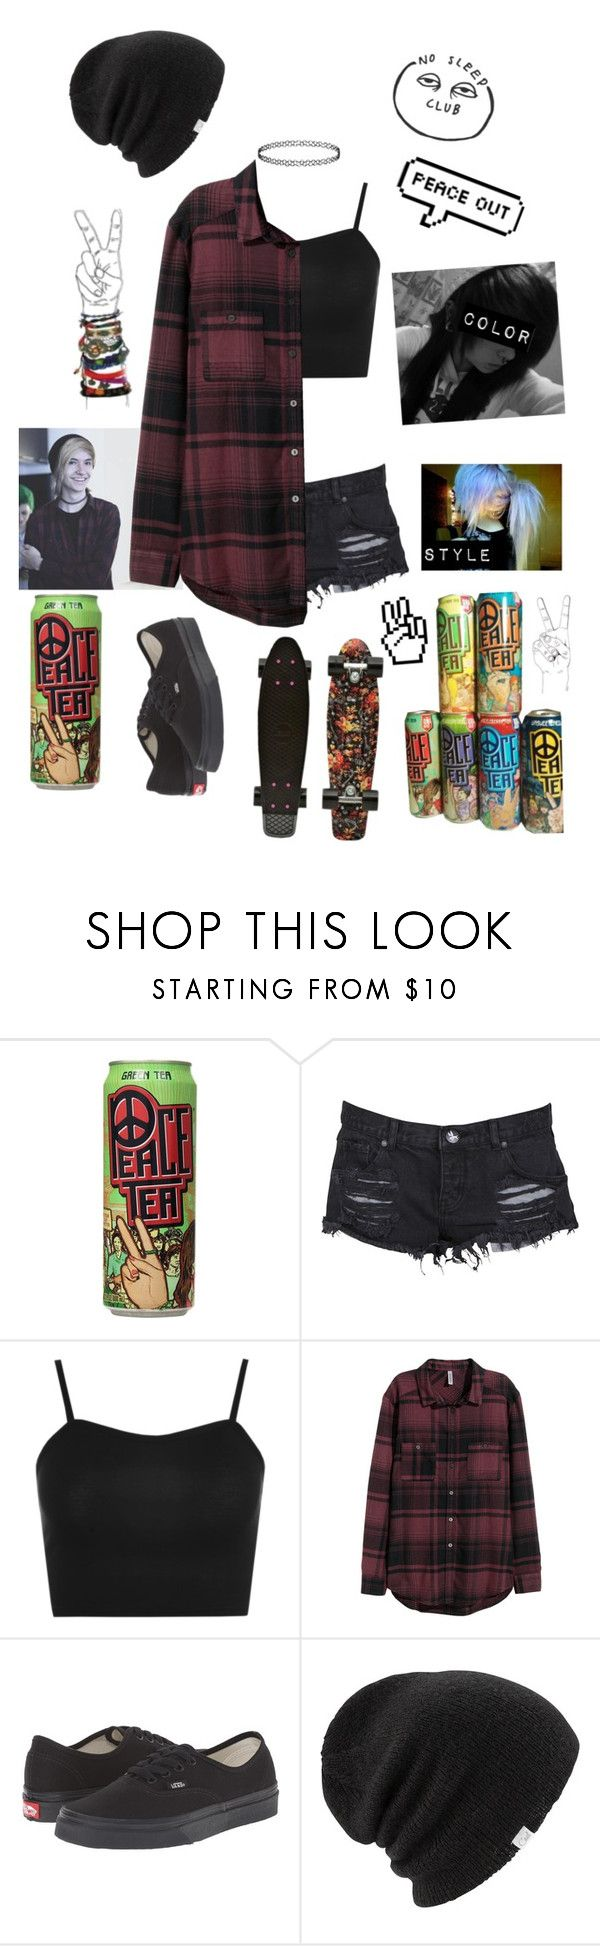 """PEACE TEA IS LIFE"" by literaldisaster ❤ liked on Polyvore featuring OneTeaspoon, WearAll, H&M, Vans, Coal and Strange Days"